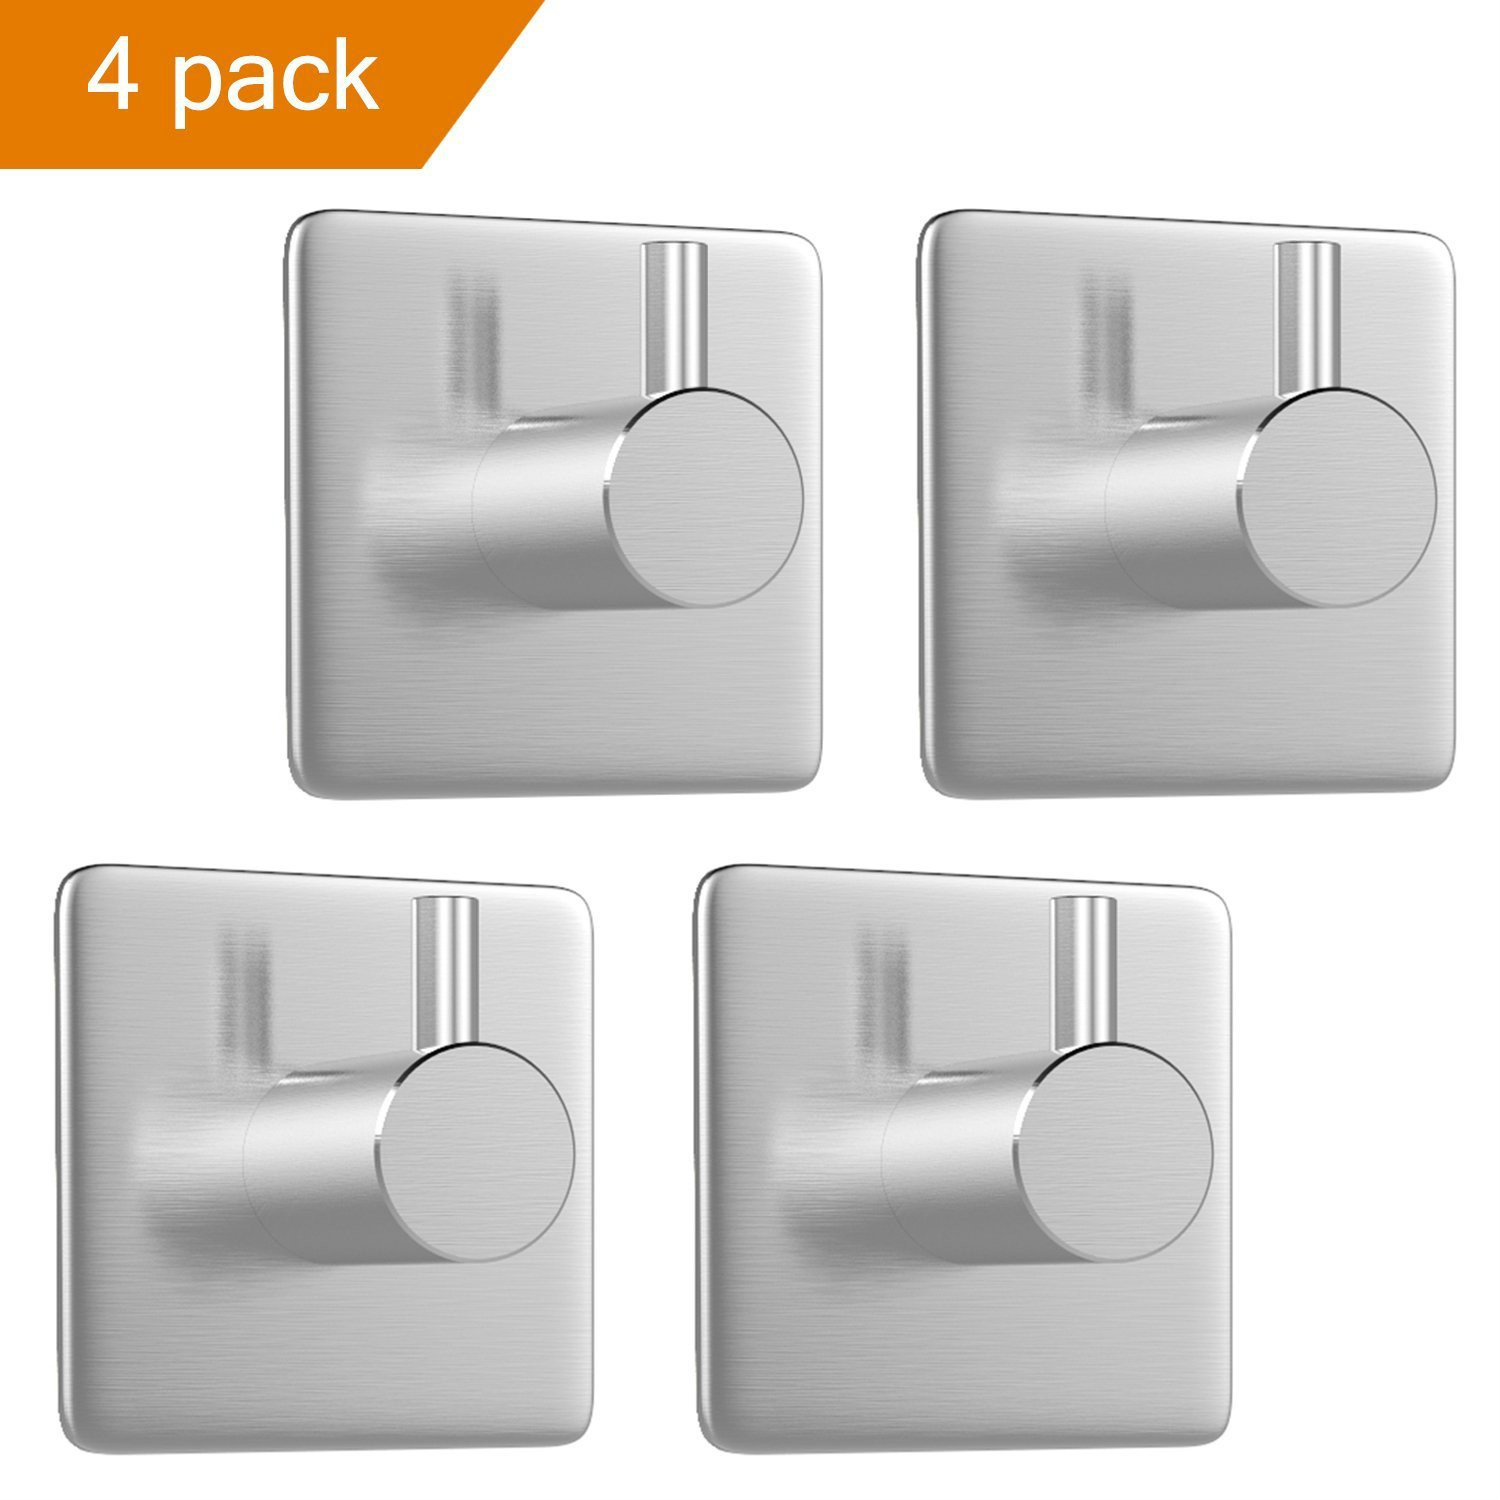 Wuyue Hua 4PACK Self Adhesive Hook Kitchen Bathroom Wall Door Heavy Duty 304 Stainless Steel Stick Holder Hanger Brushed Finish